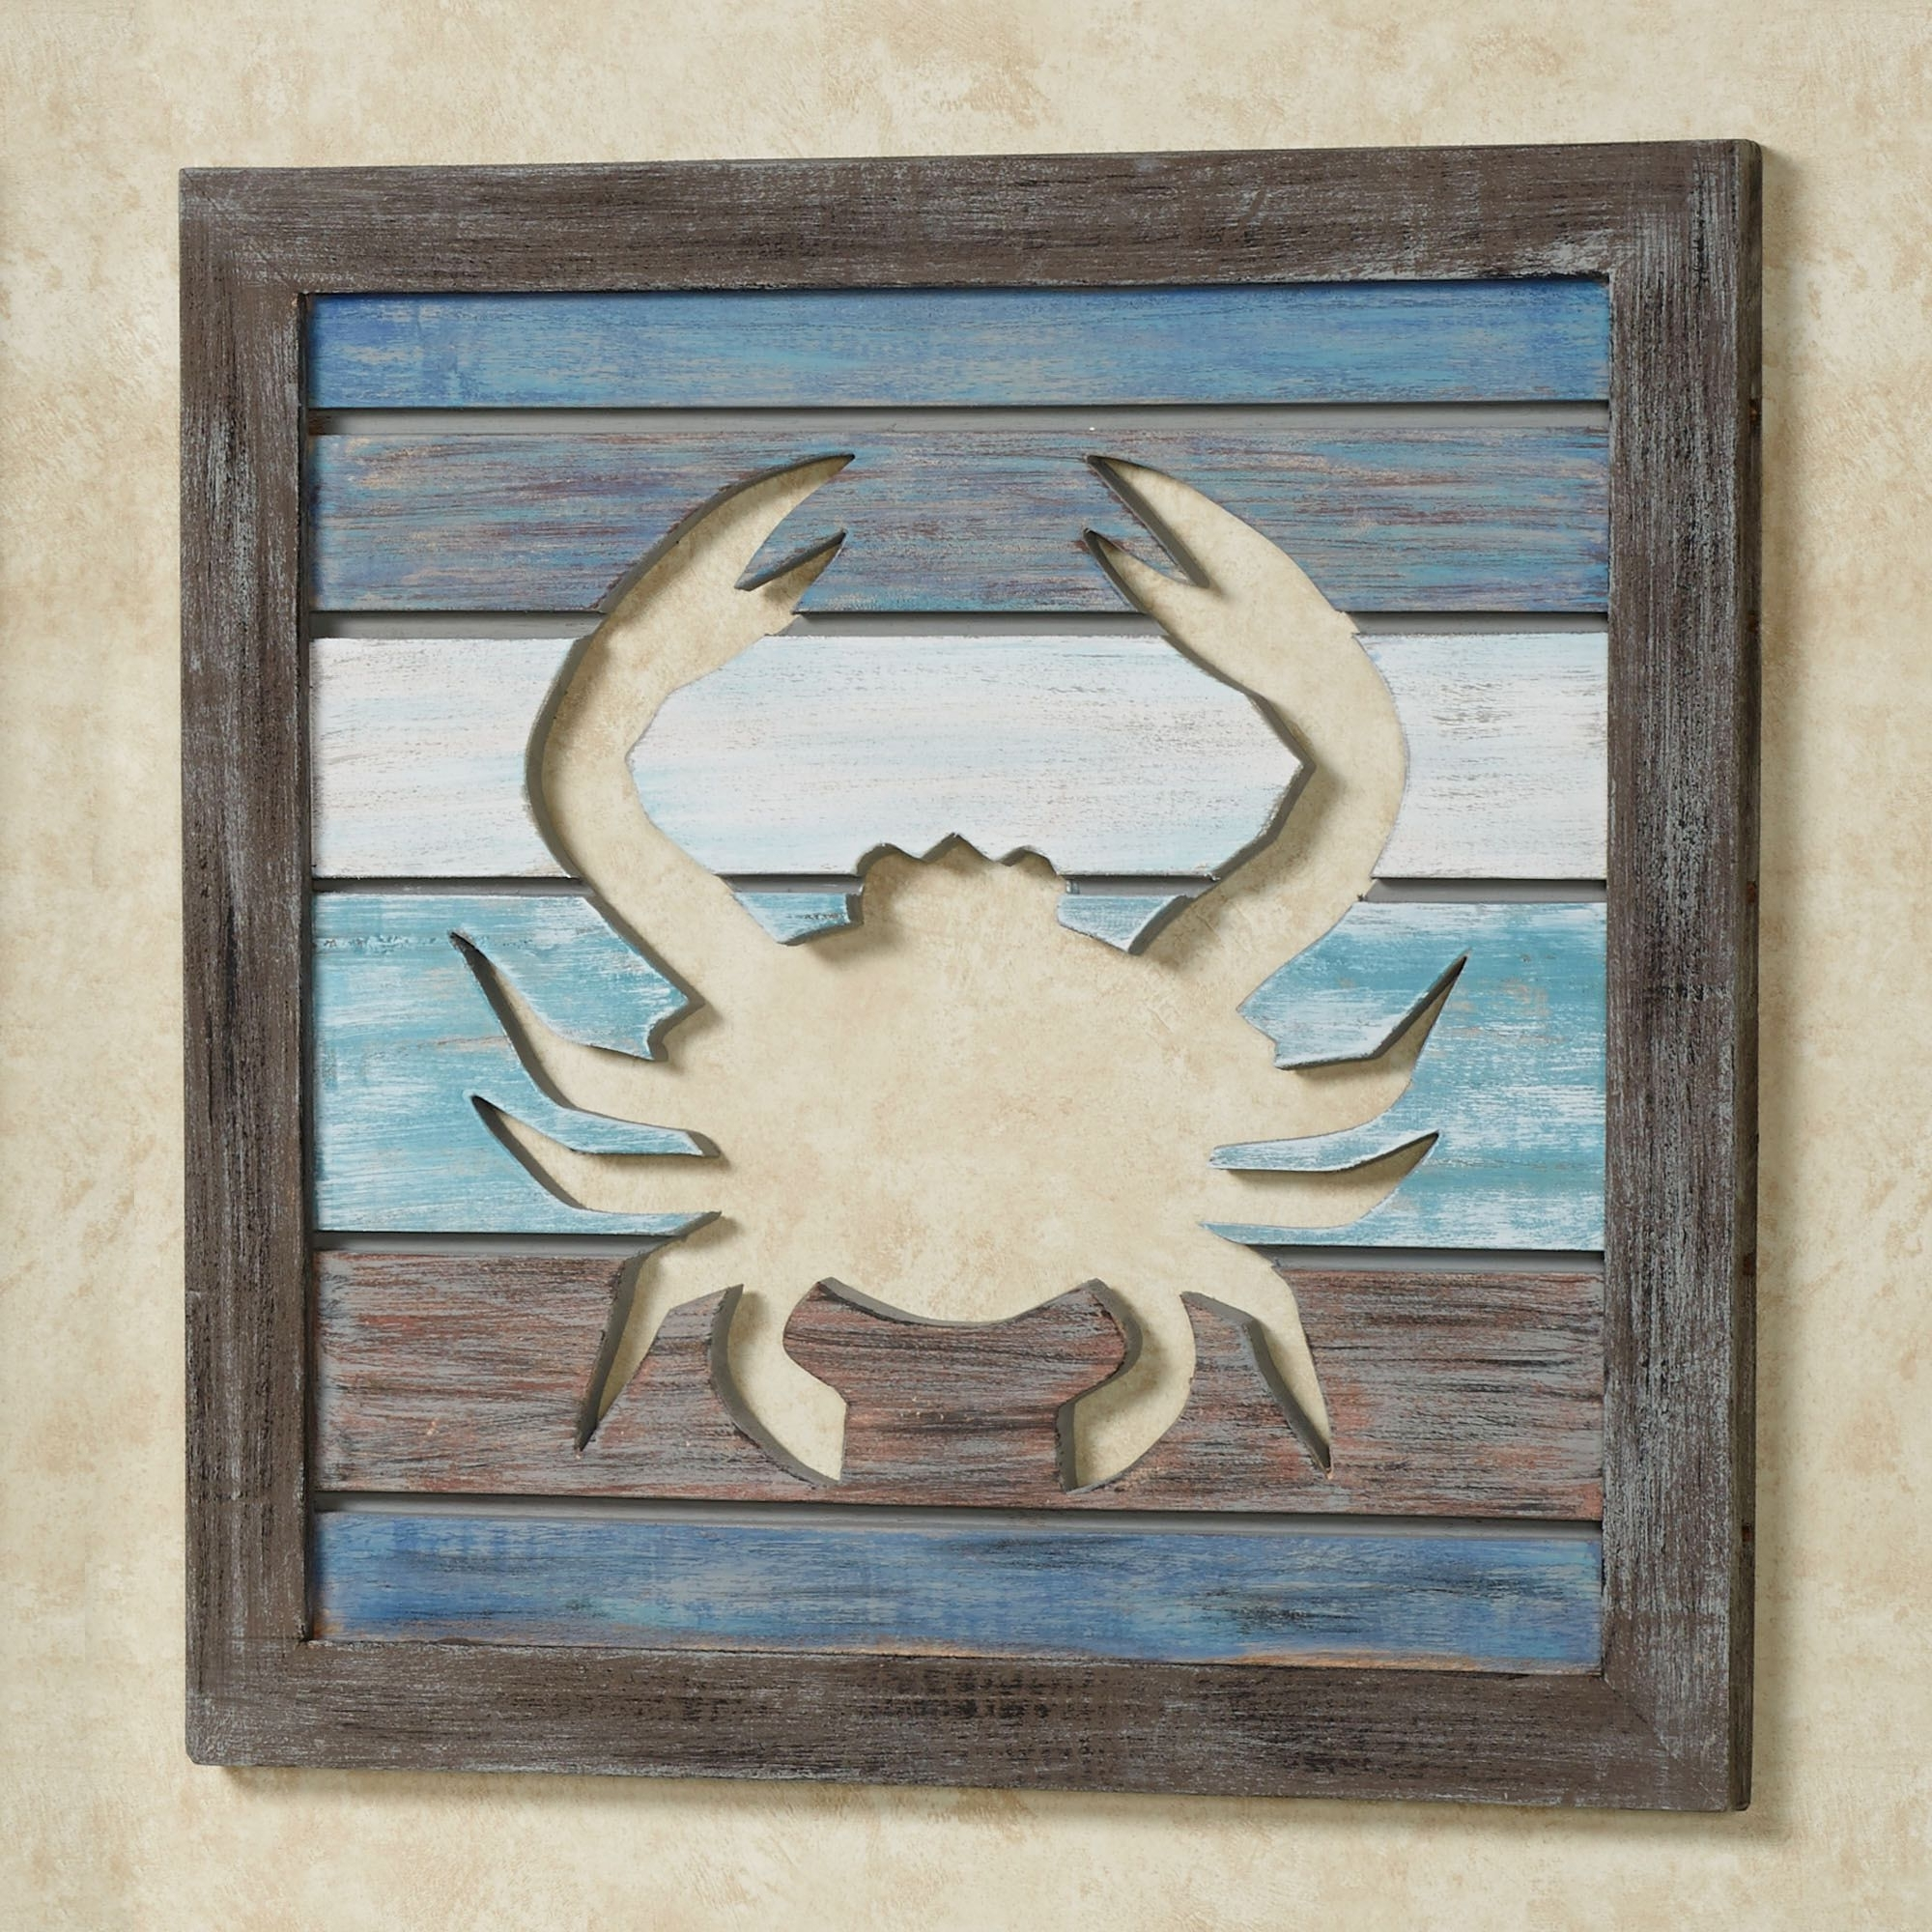 Sealife Cutout Slat Indoor Outdoor Coastal Wall Art Regarding Most Up To Date Sea Life Wall Art (Gallery 15 of 15)